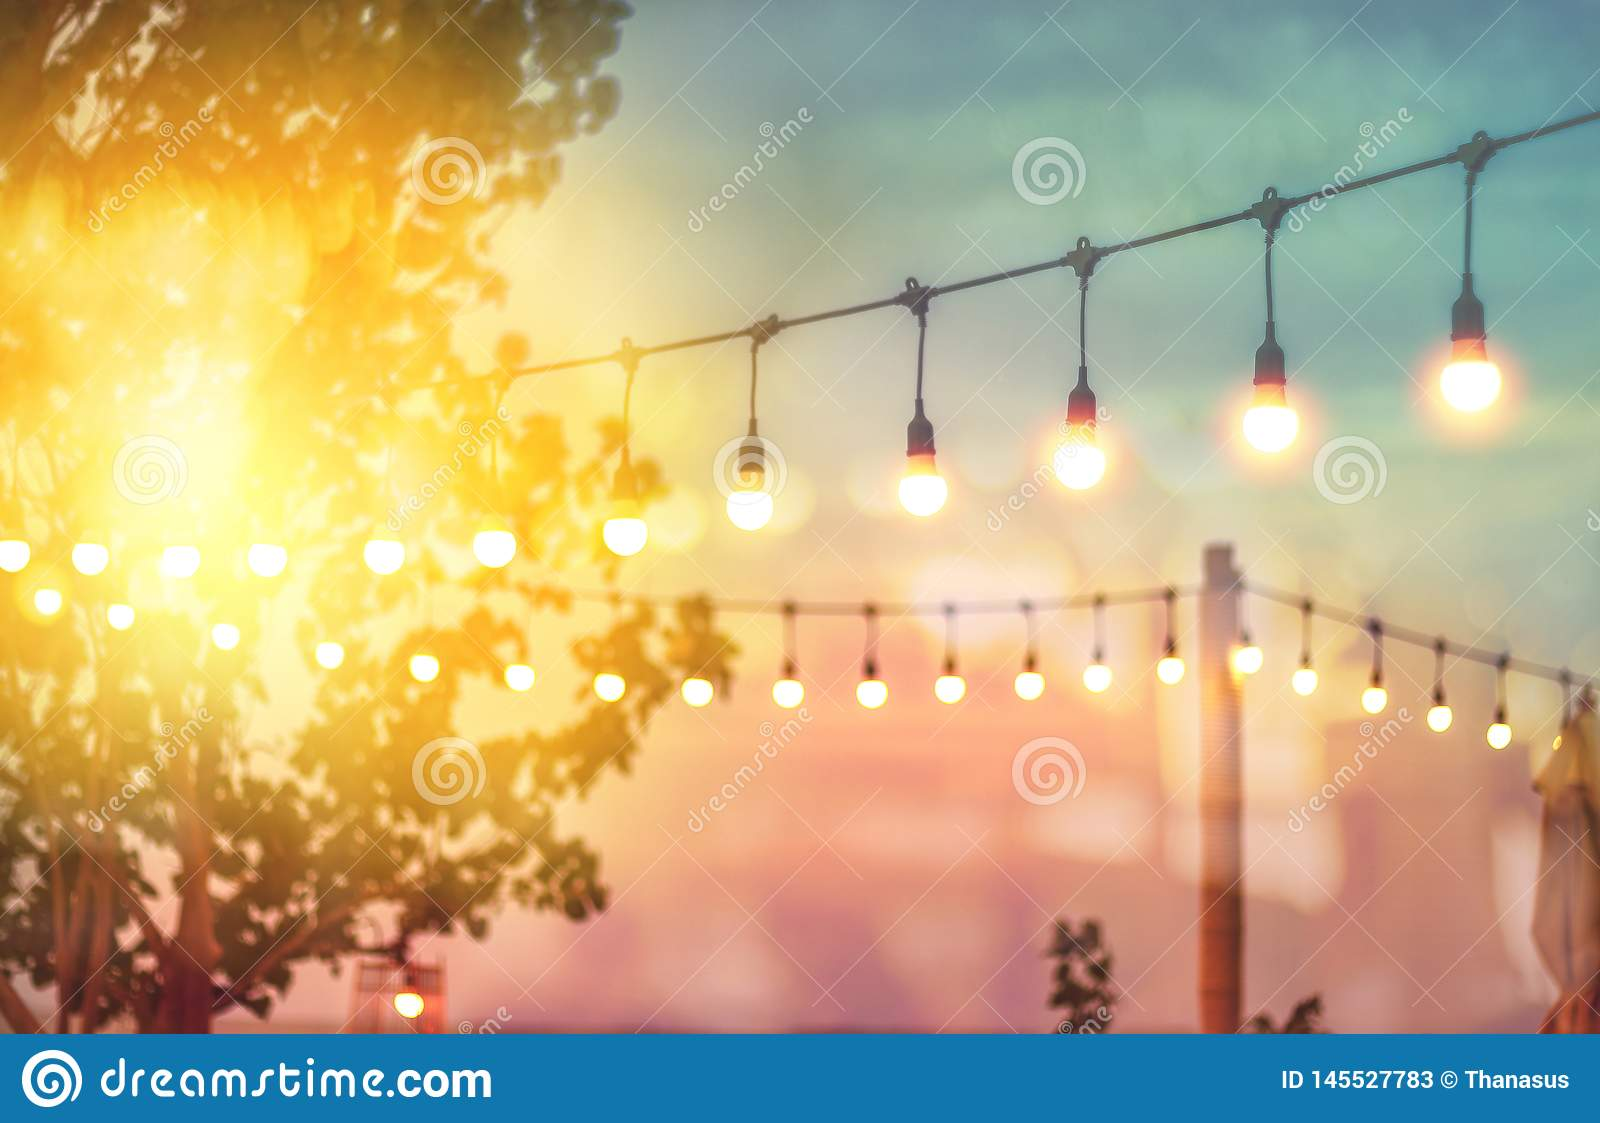 Blurred light on sunset with yellow string lights decor in beach restaurant